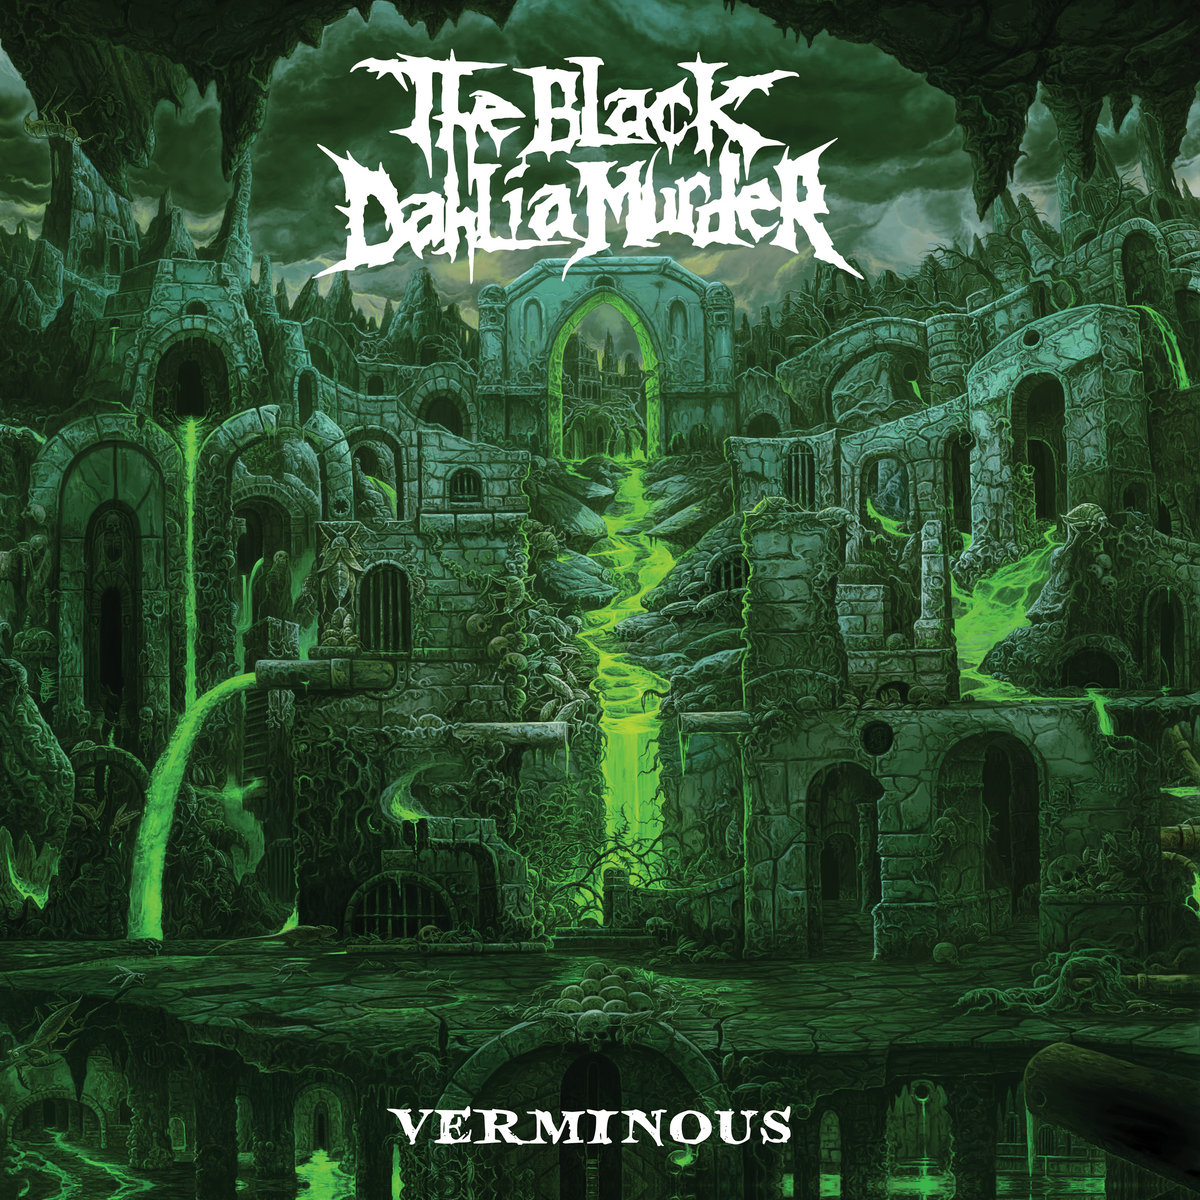 THE BLACK DAHLIA MURDER verminous cover art